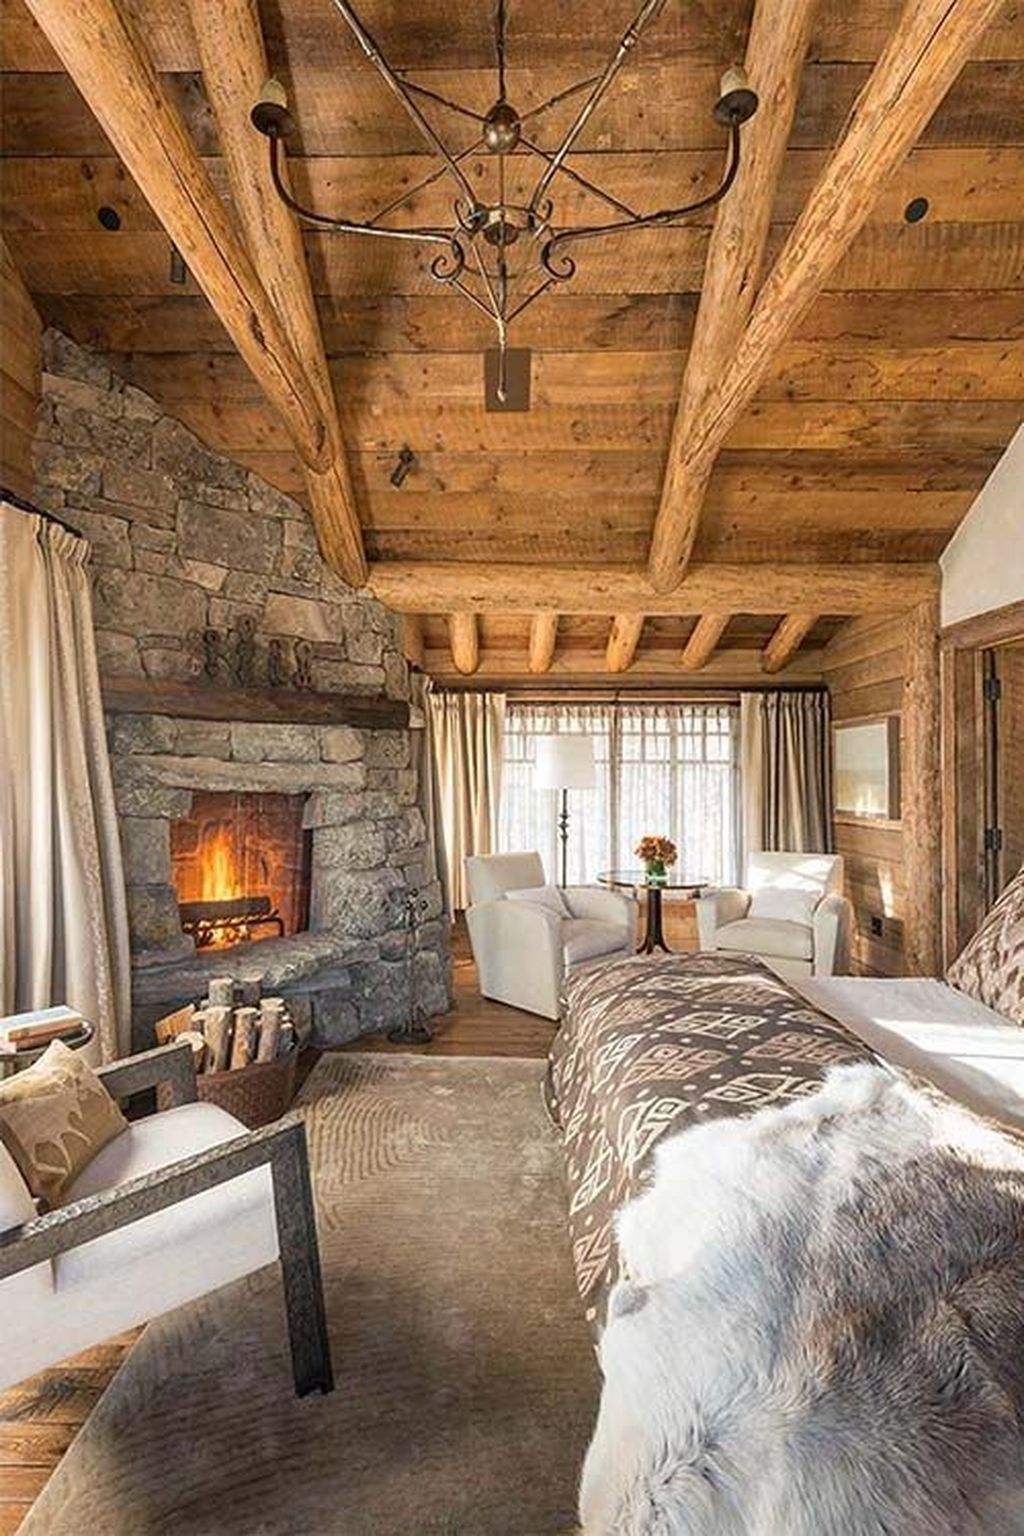 Cool 37 awesome and cozy winter interior decor fireplace